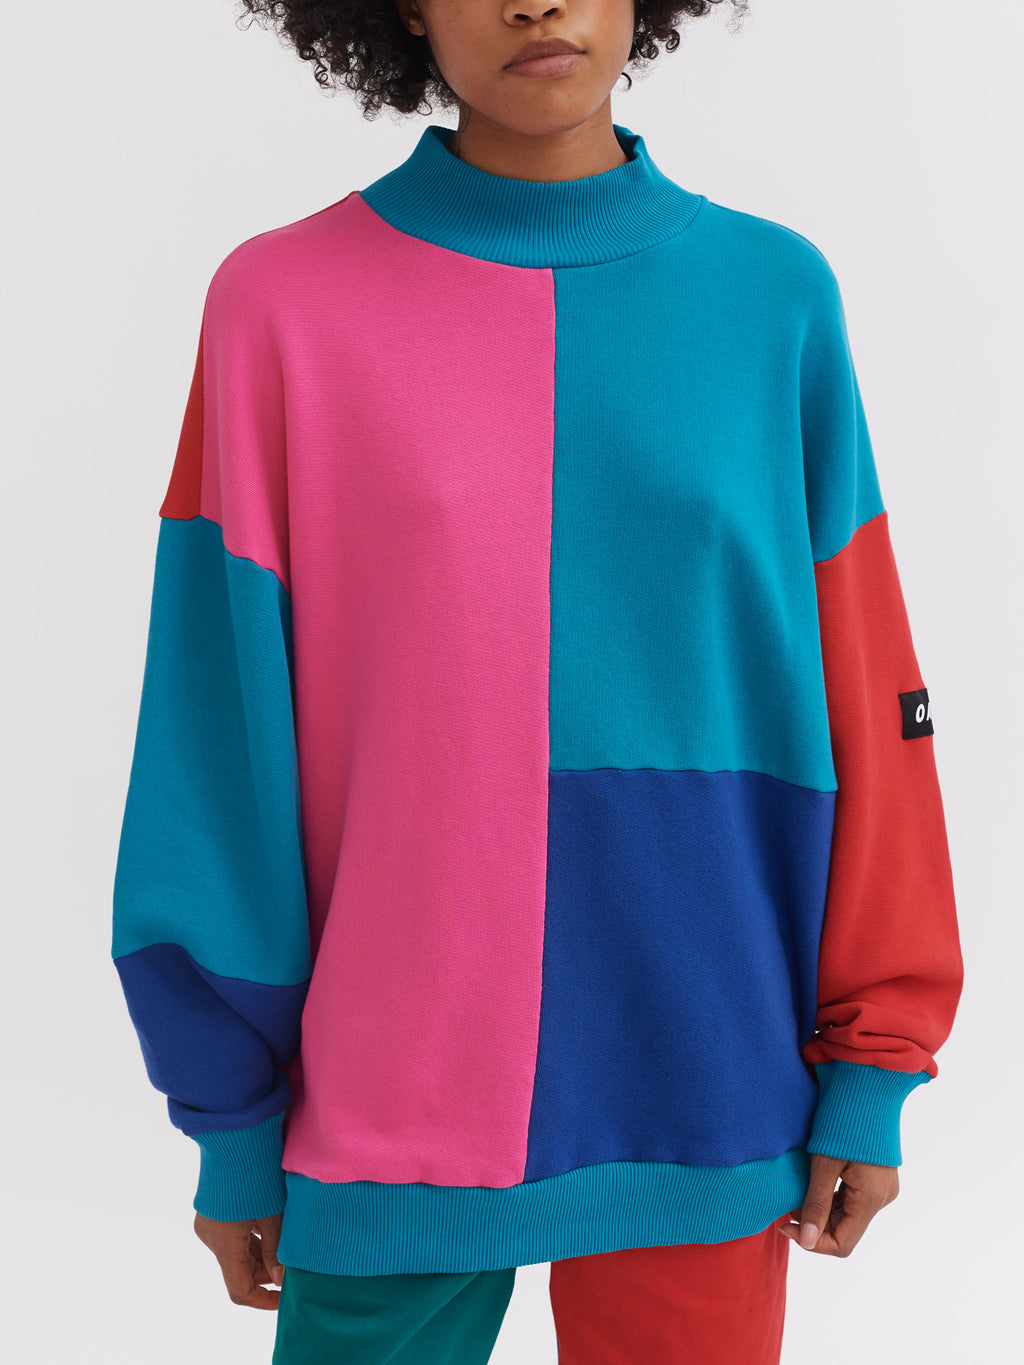 Lazy Oaf Cut & Colour Sweatshirt